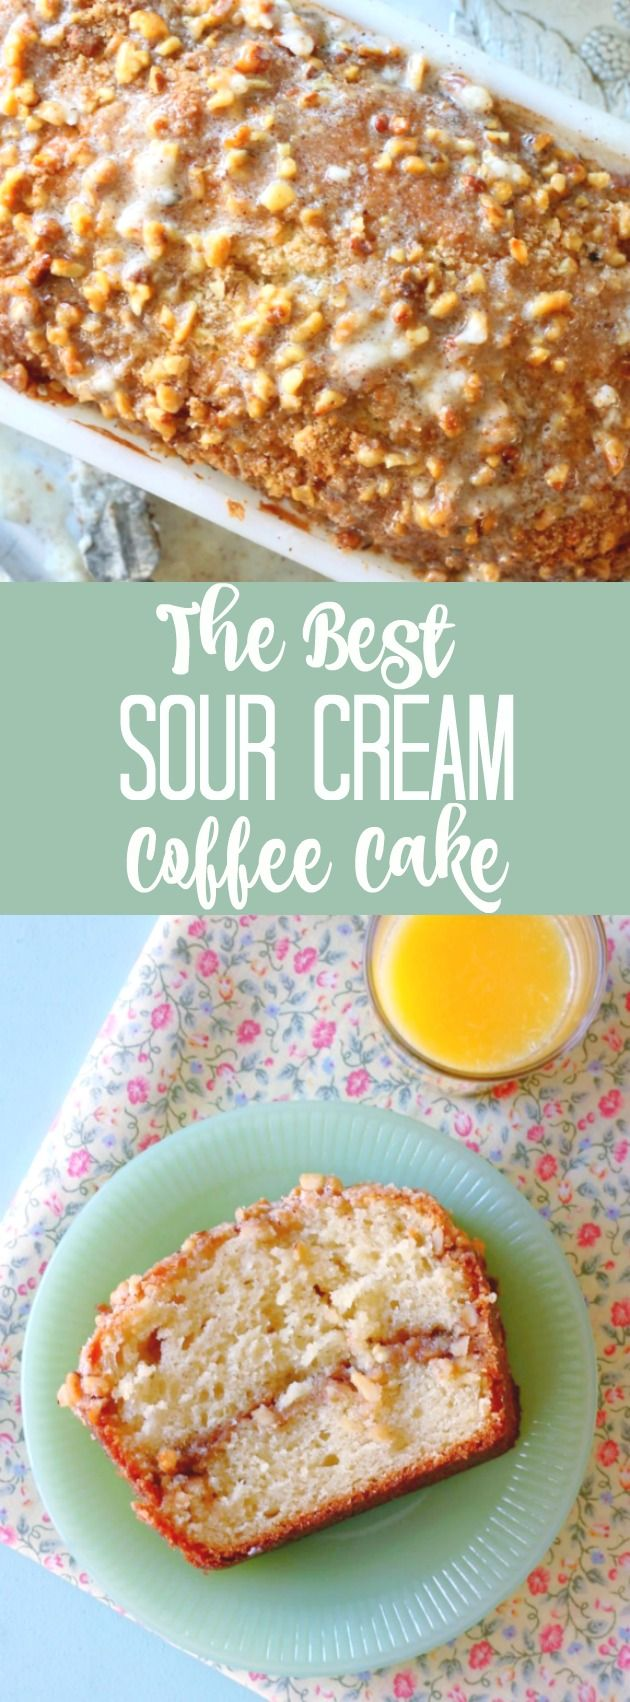 Sour cream coffee cake the frugal chef - The Best Sour Cream Coffee Cake